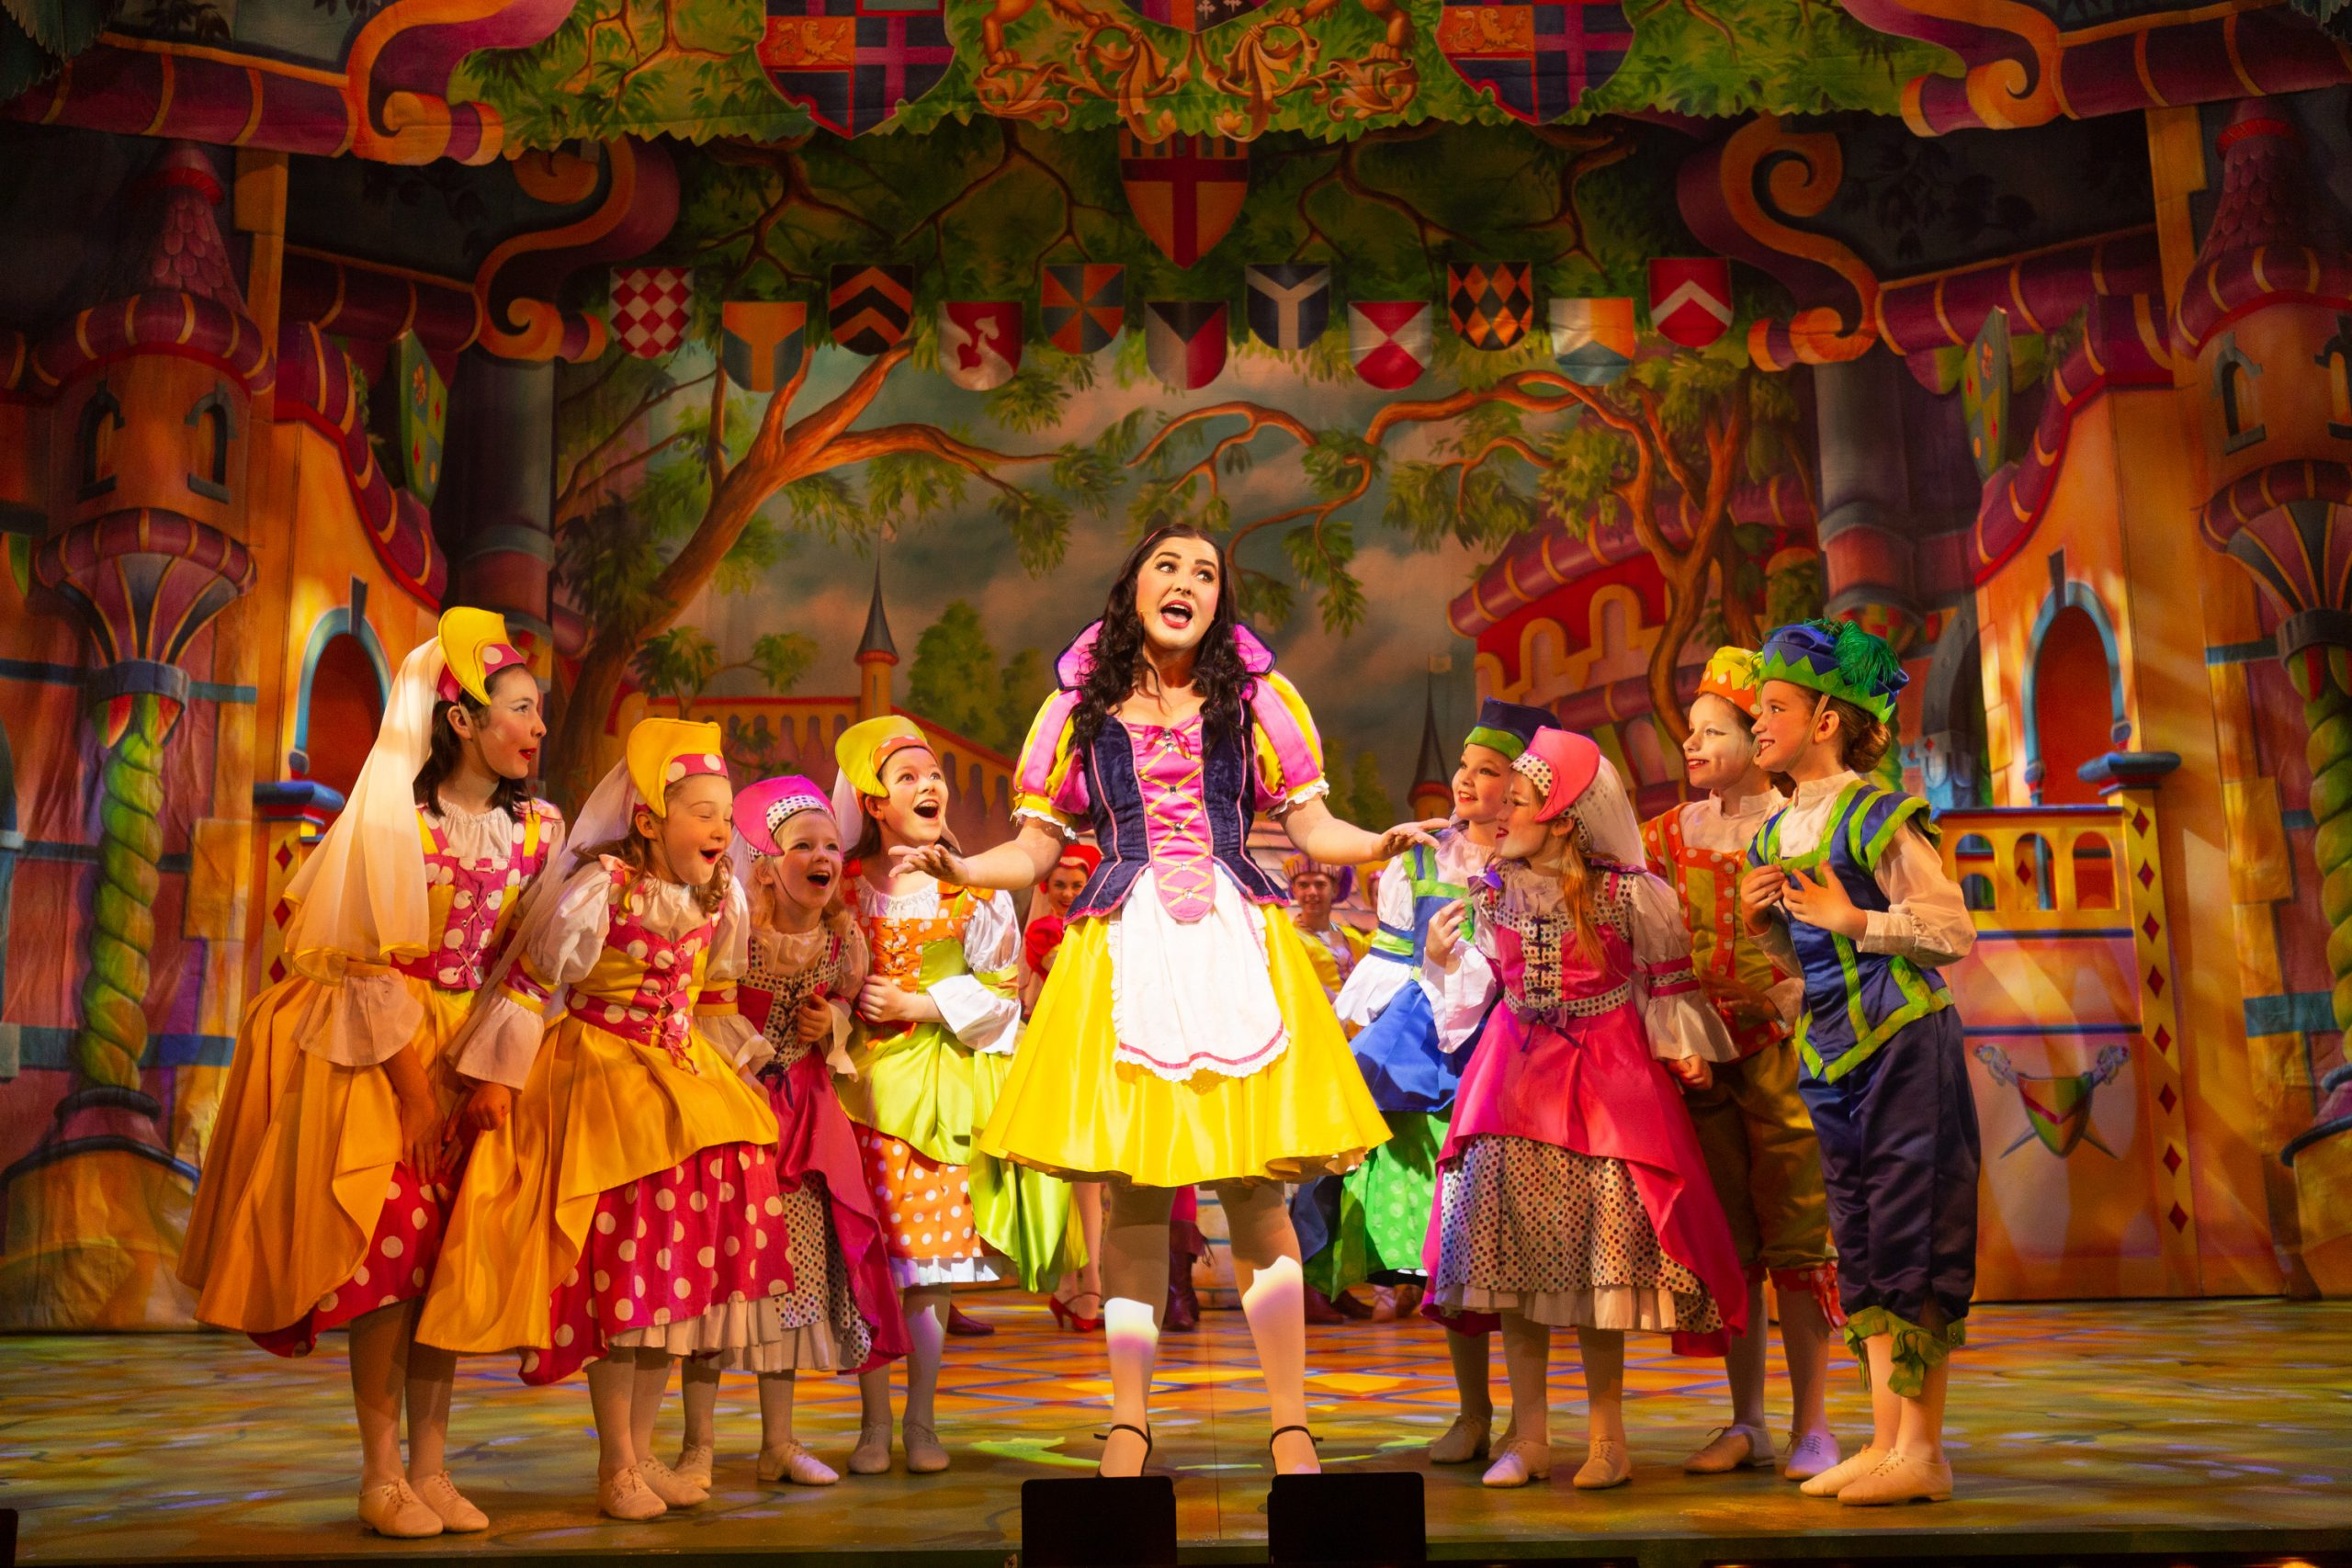 Snow white and seven dwarfs panto review